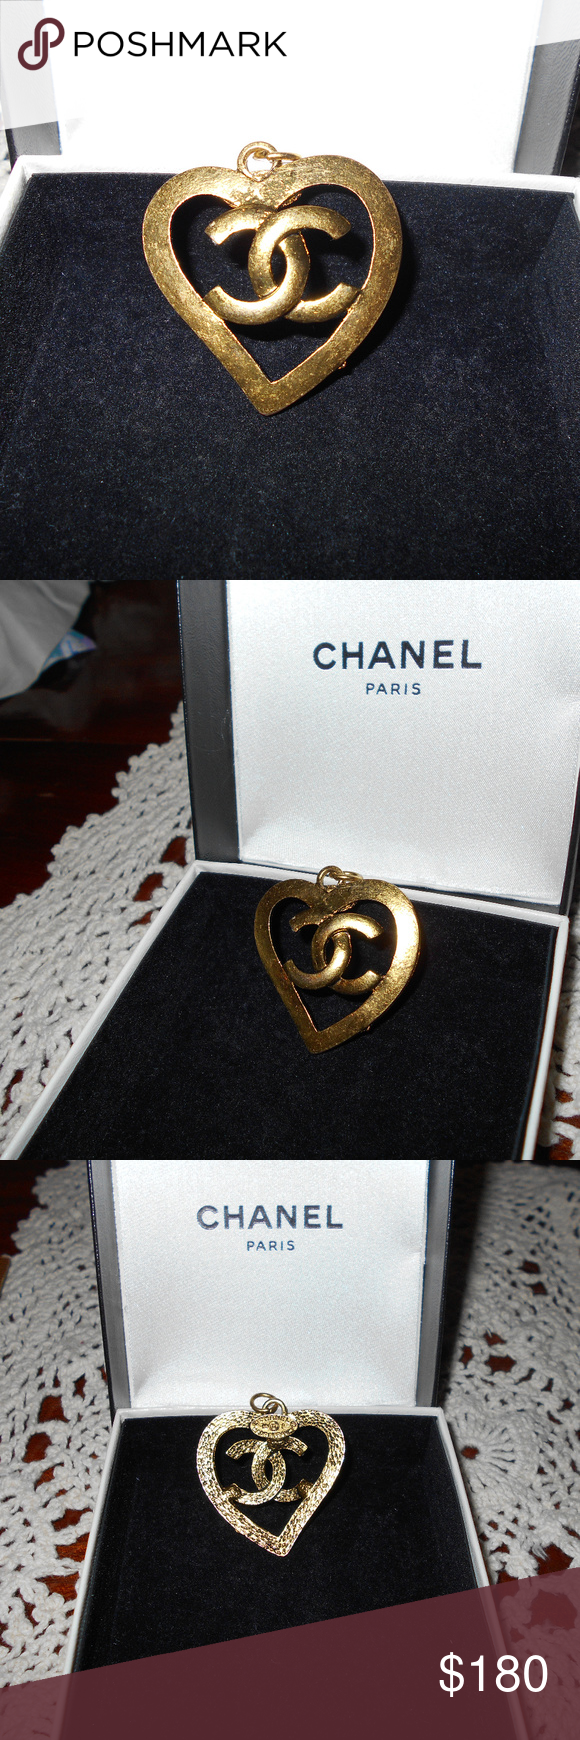 AUTHENTIC CHANEL PENDANT This is an authentic, vintage